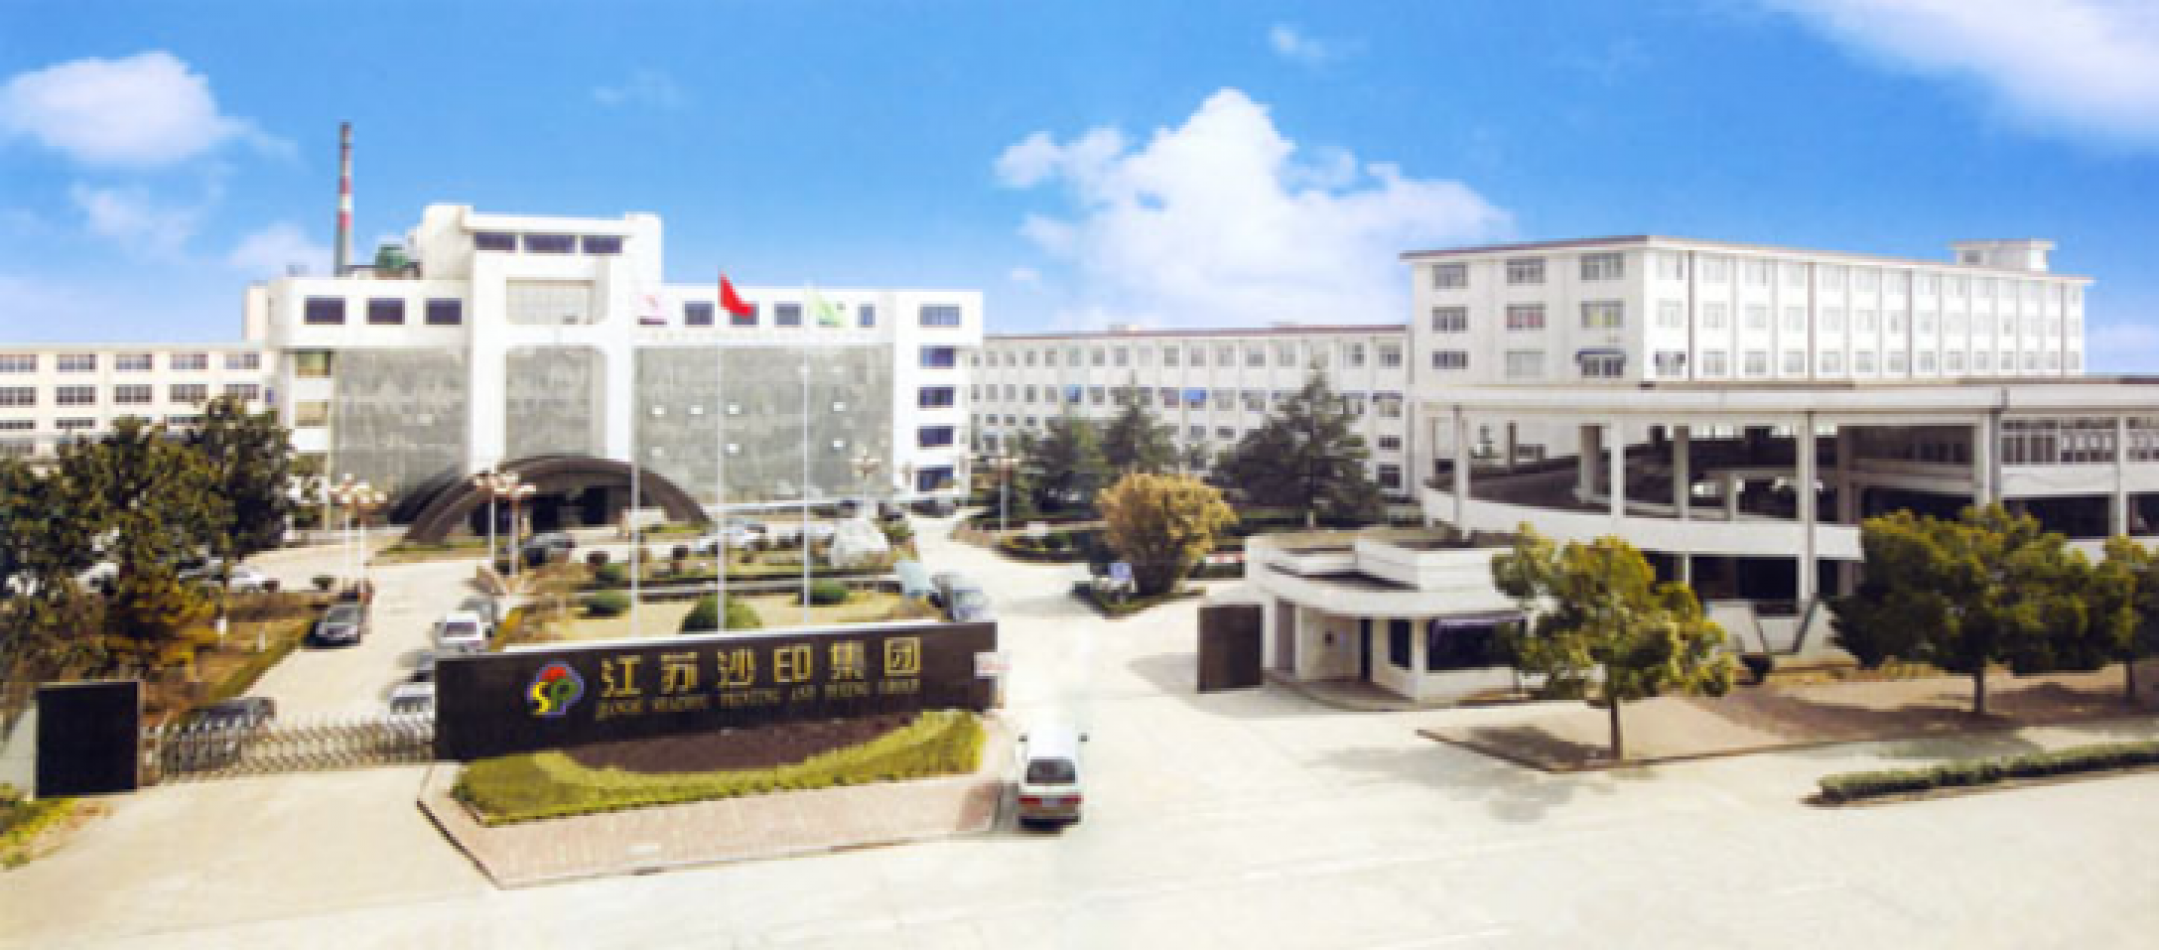 JIANGSU SHAZHOU GROUP SHEYANG PRINTING AND DYEING CO., LTD.